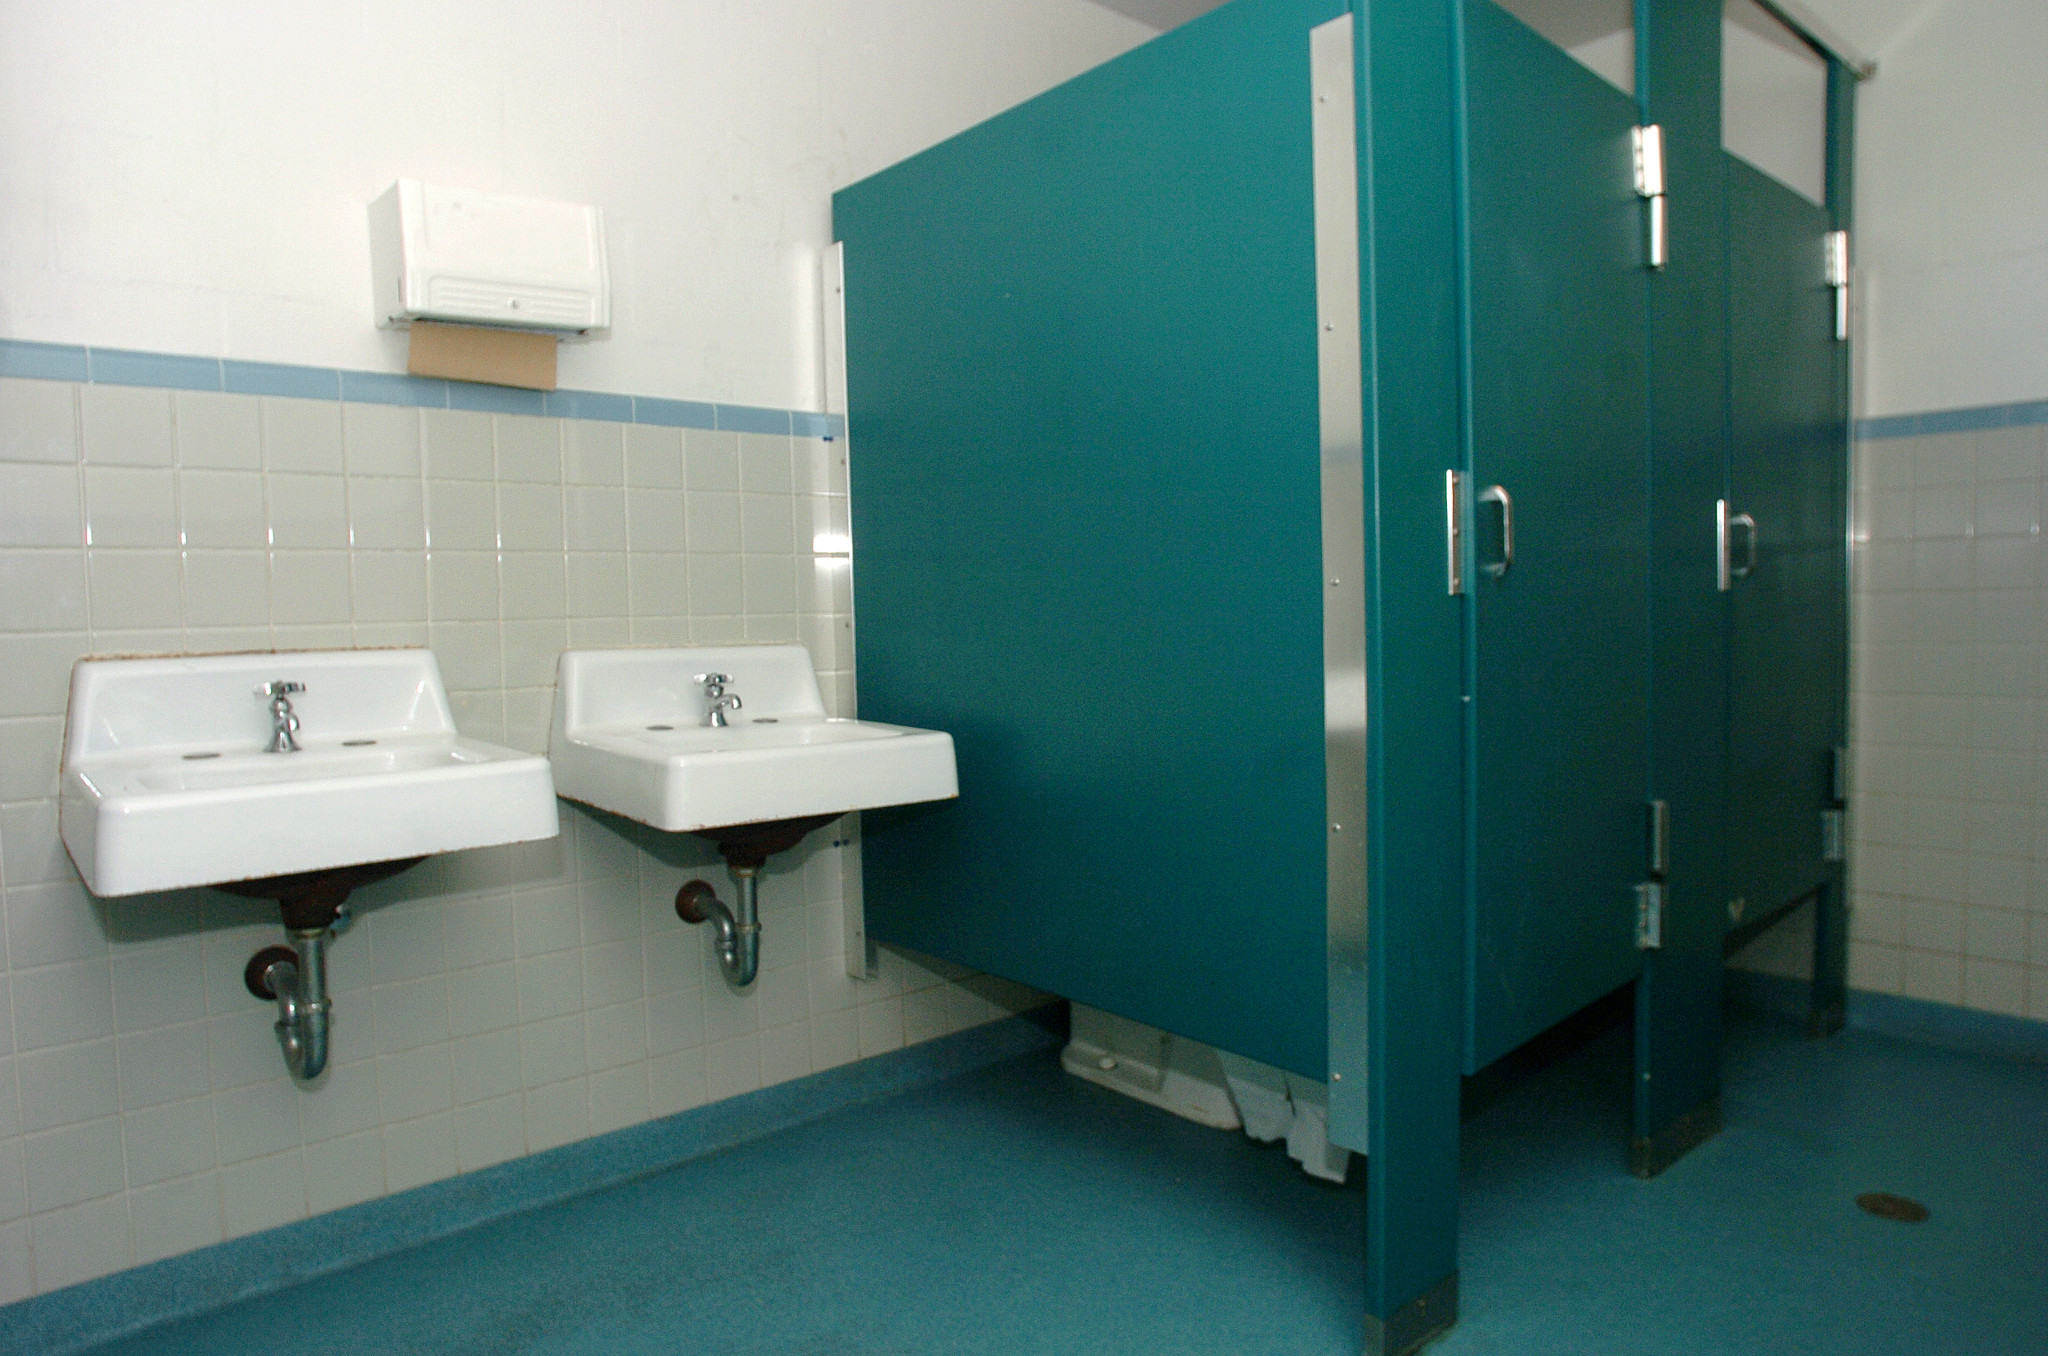 dirty school bathrooms aren 39 t okay board member says orlando sentinel. Black Bedroom Furniture Sets. Home Design Ideas